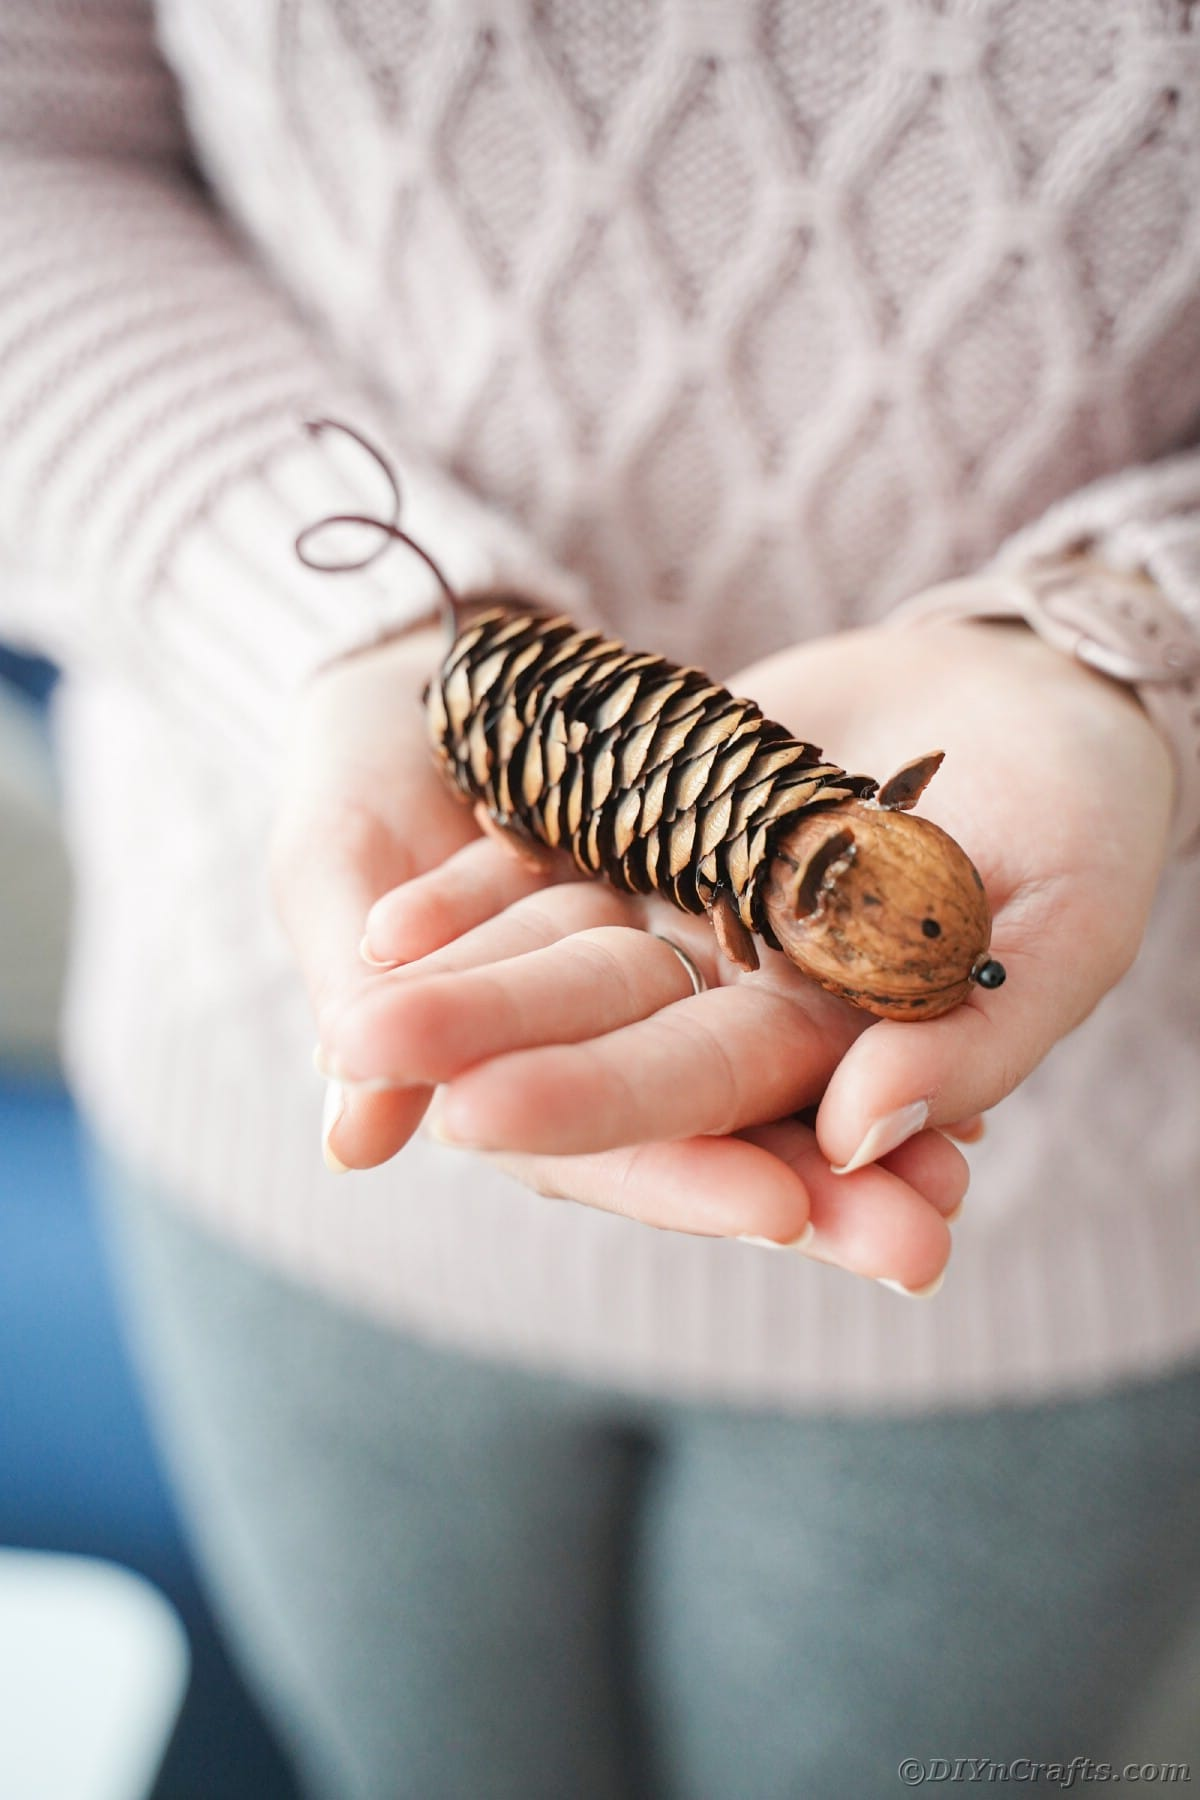 lady in pink sweater holding pinecone mouse in hands